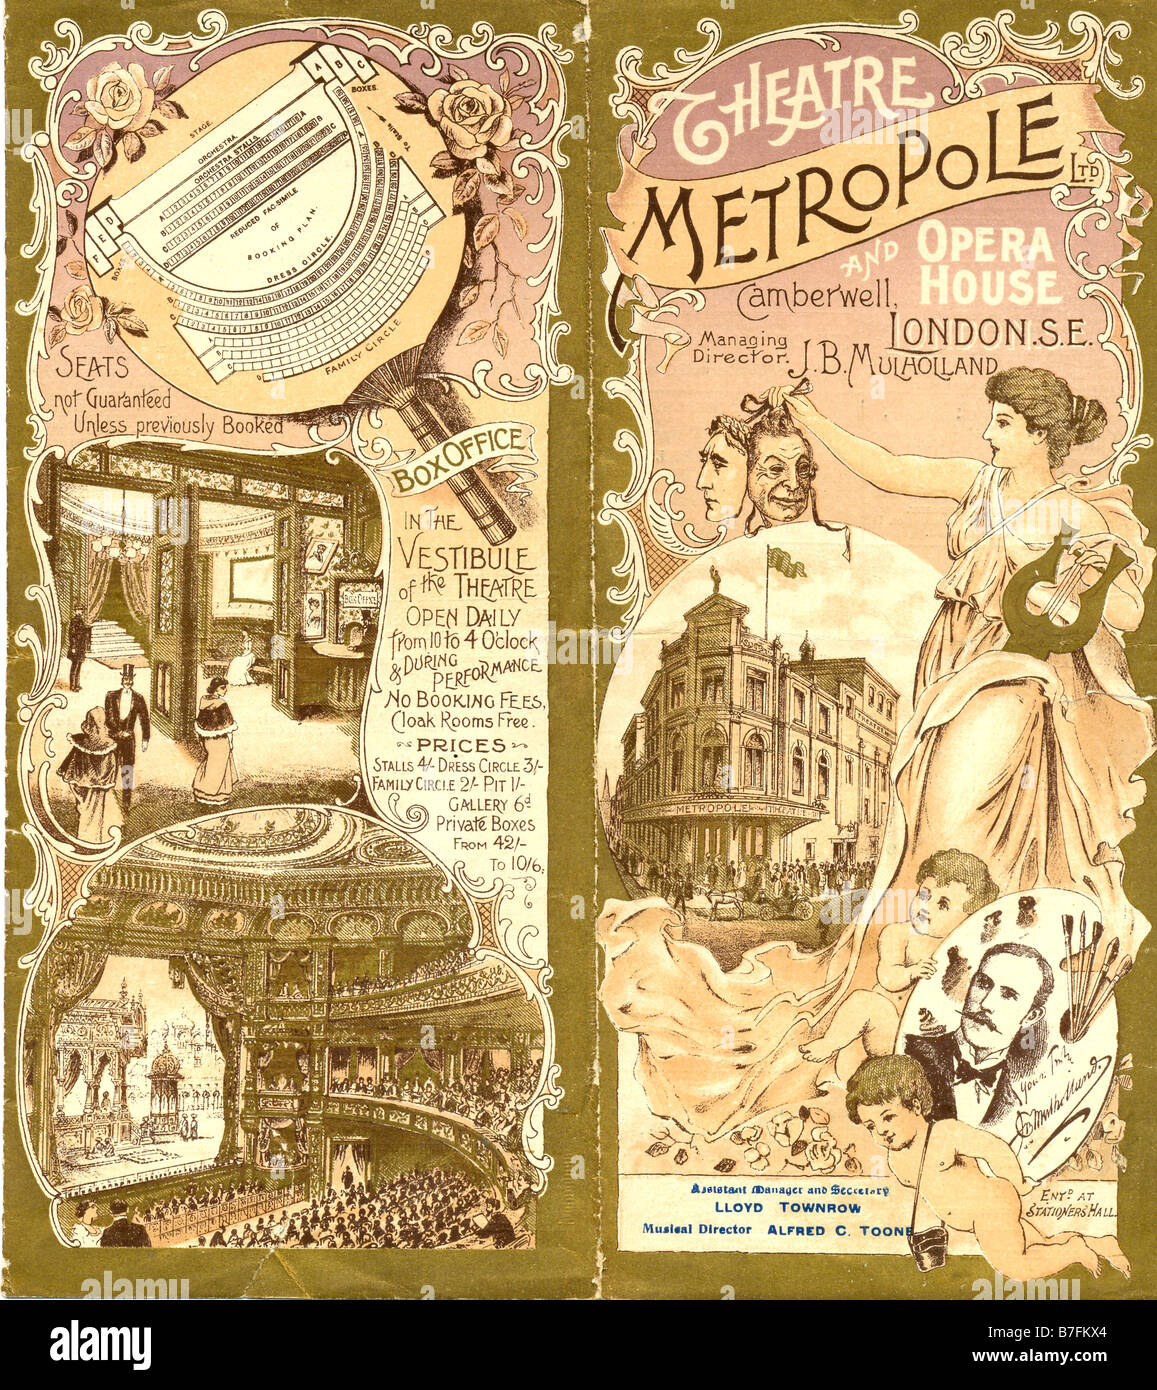 Programme for Theatre Metropole and Opera House, Camberwell, London S E - Stock Image